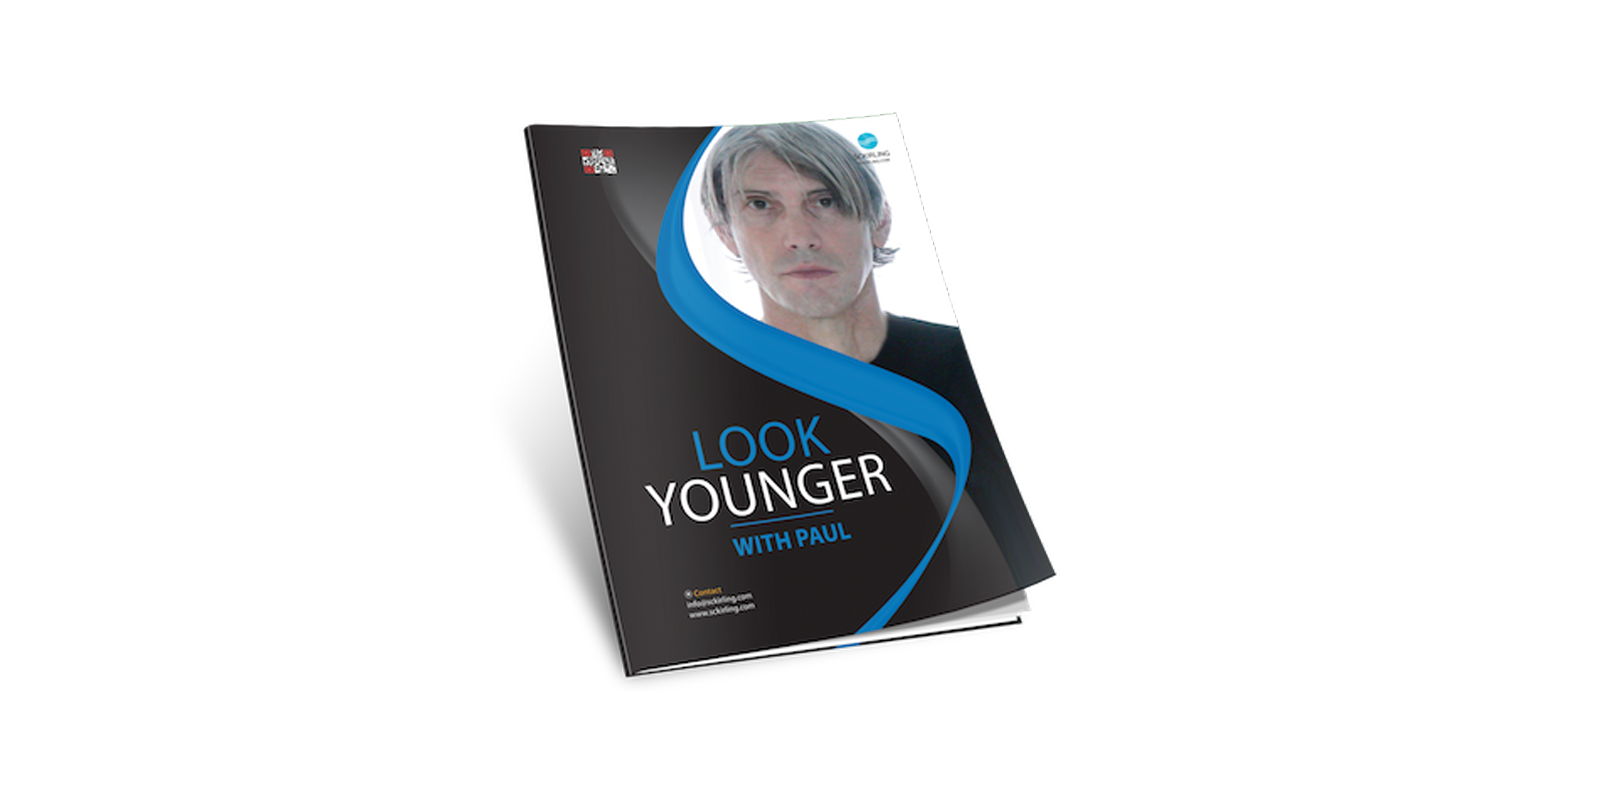 Look Younger With Paul review